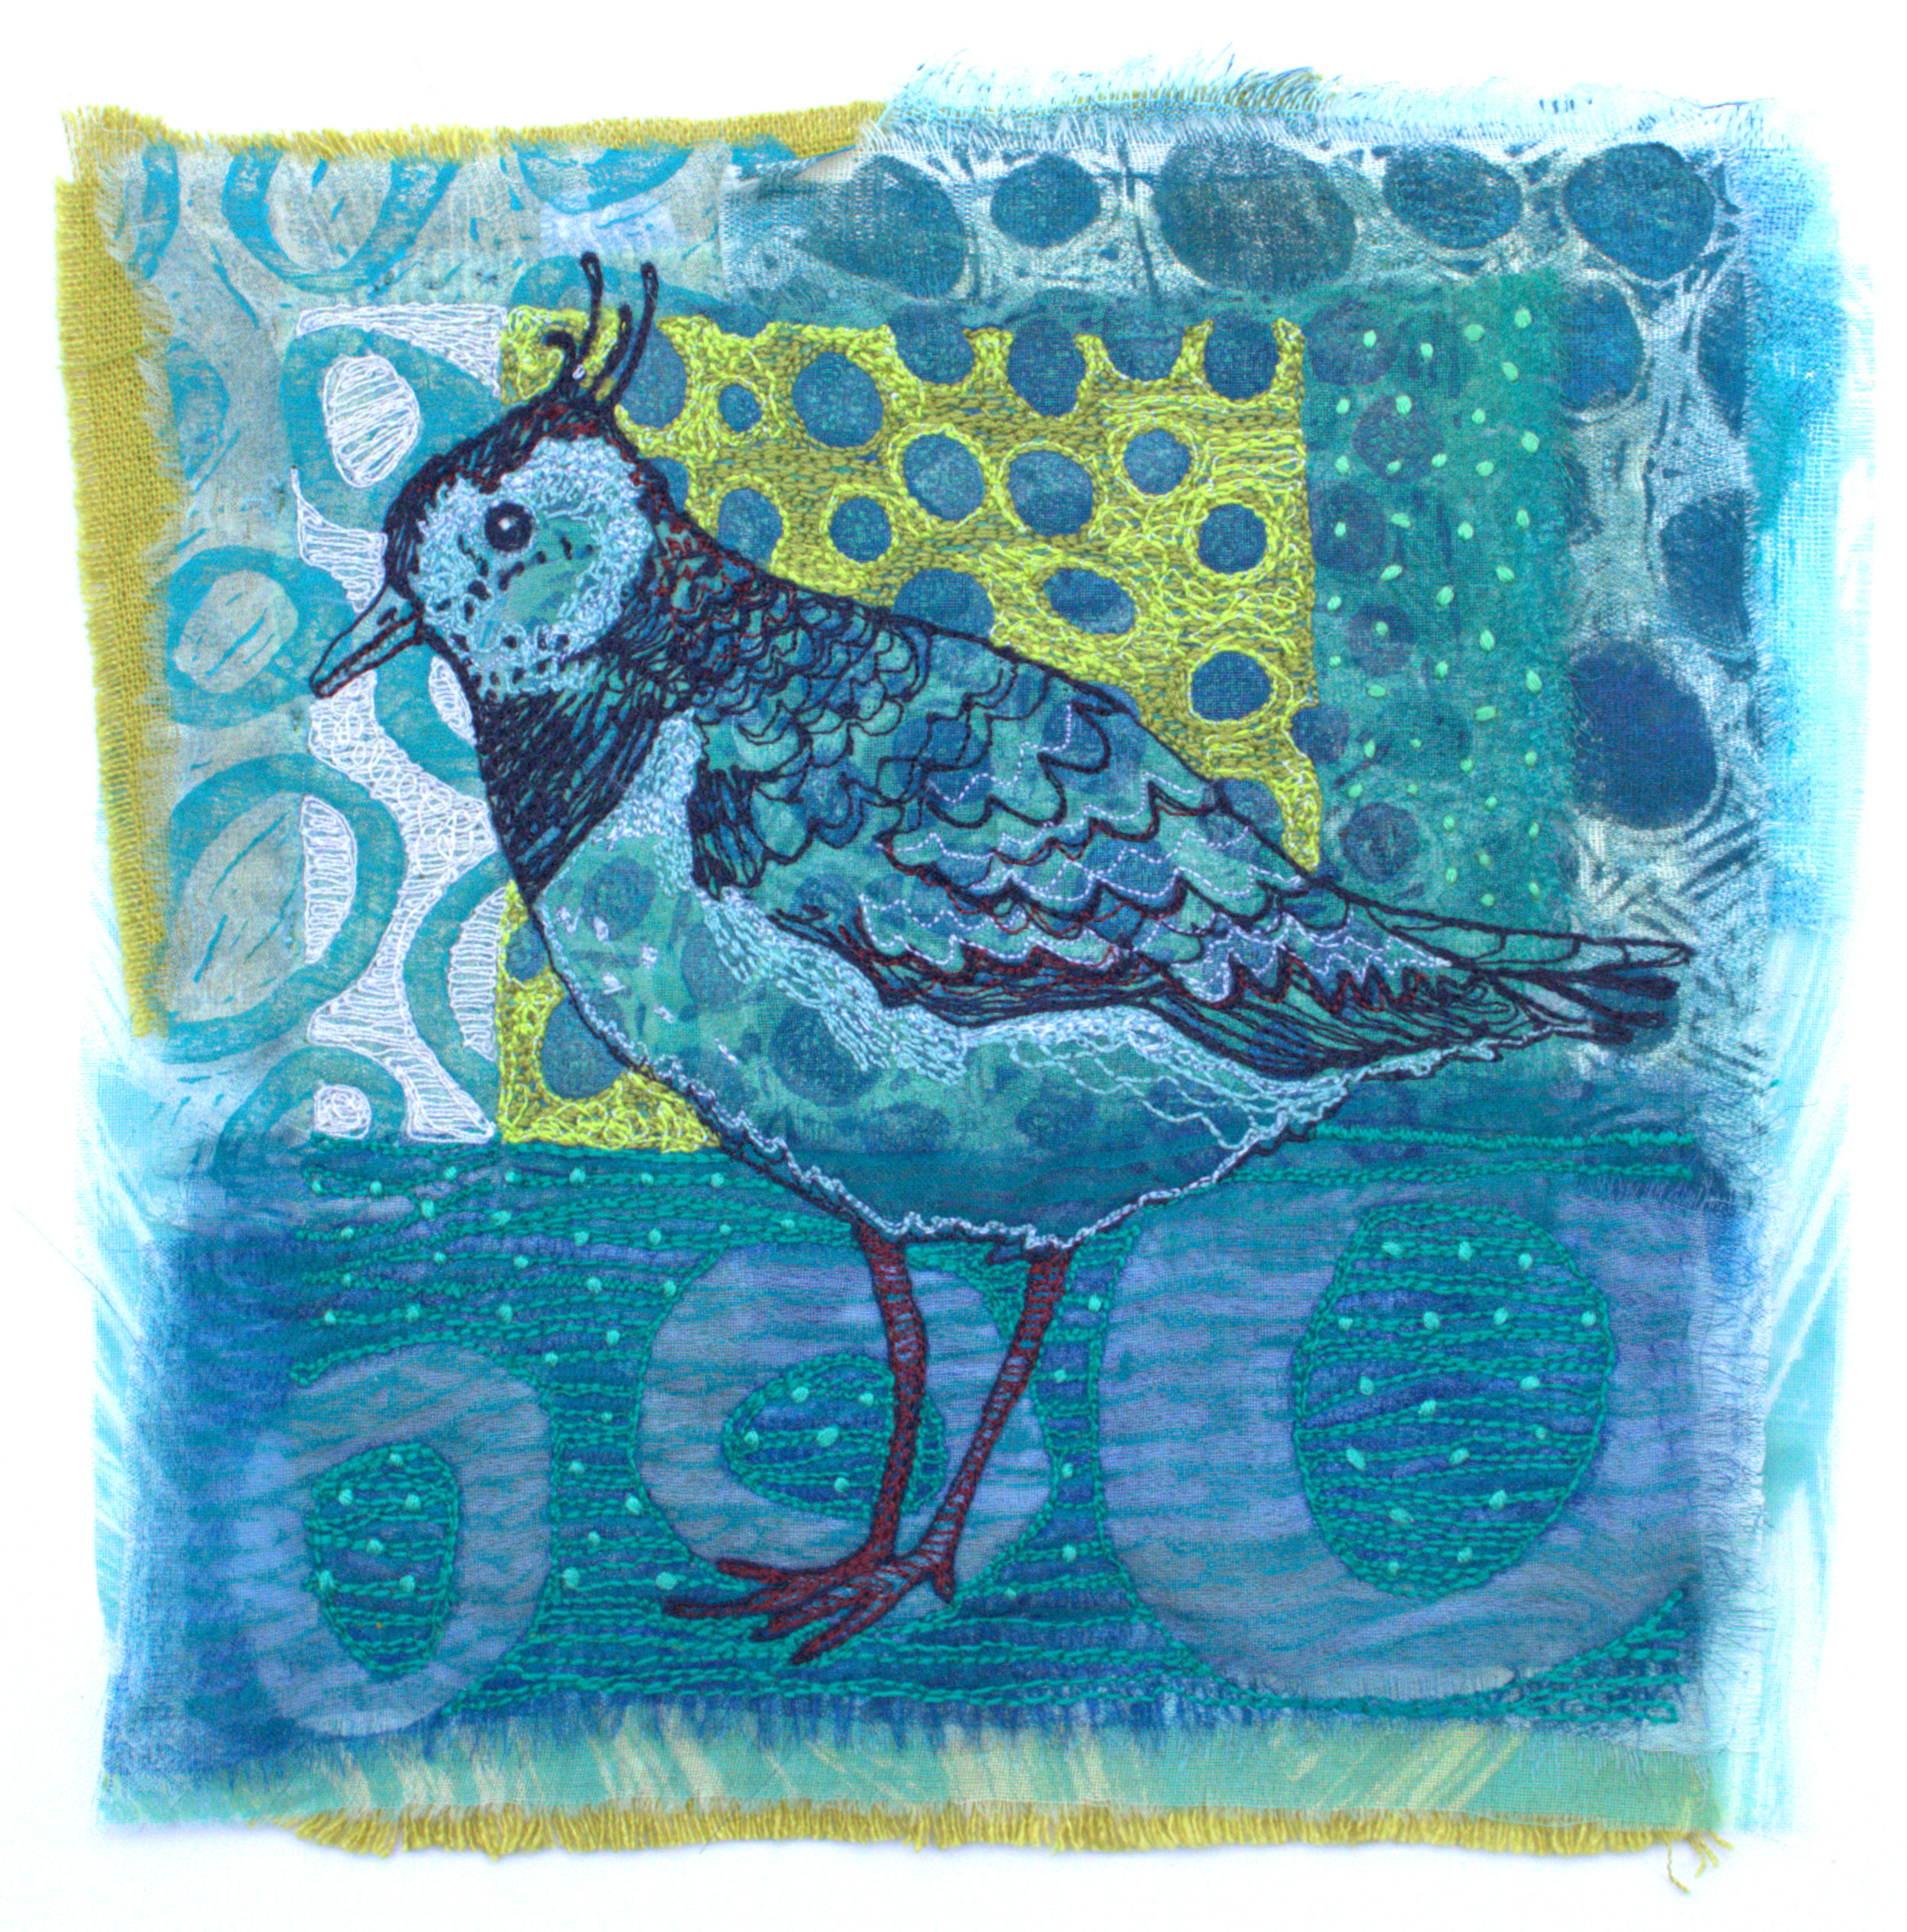 Lapwing, 2021, constructed textile, 18cm x 18cm